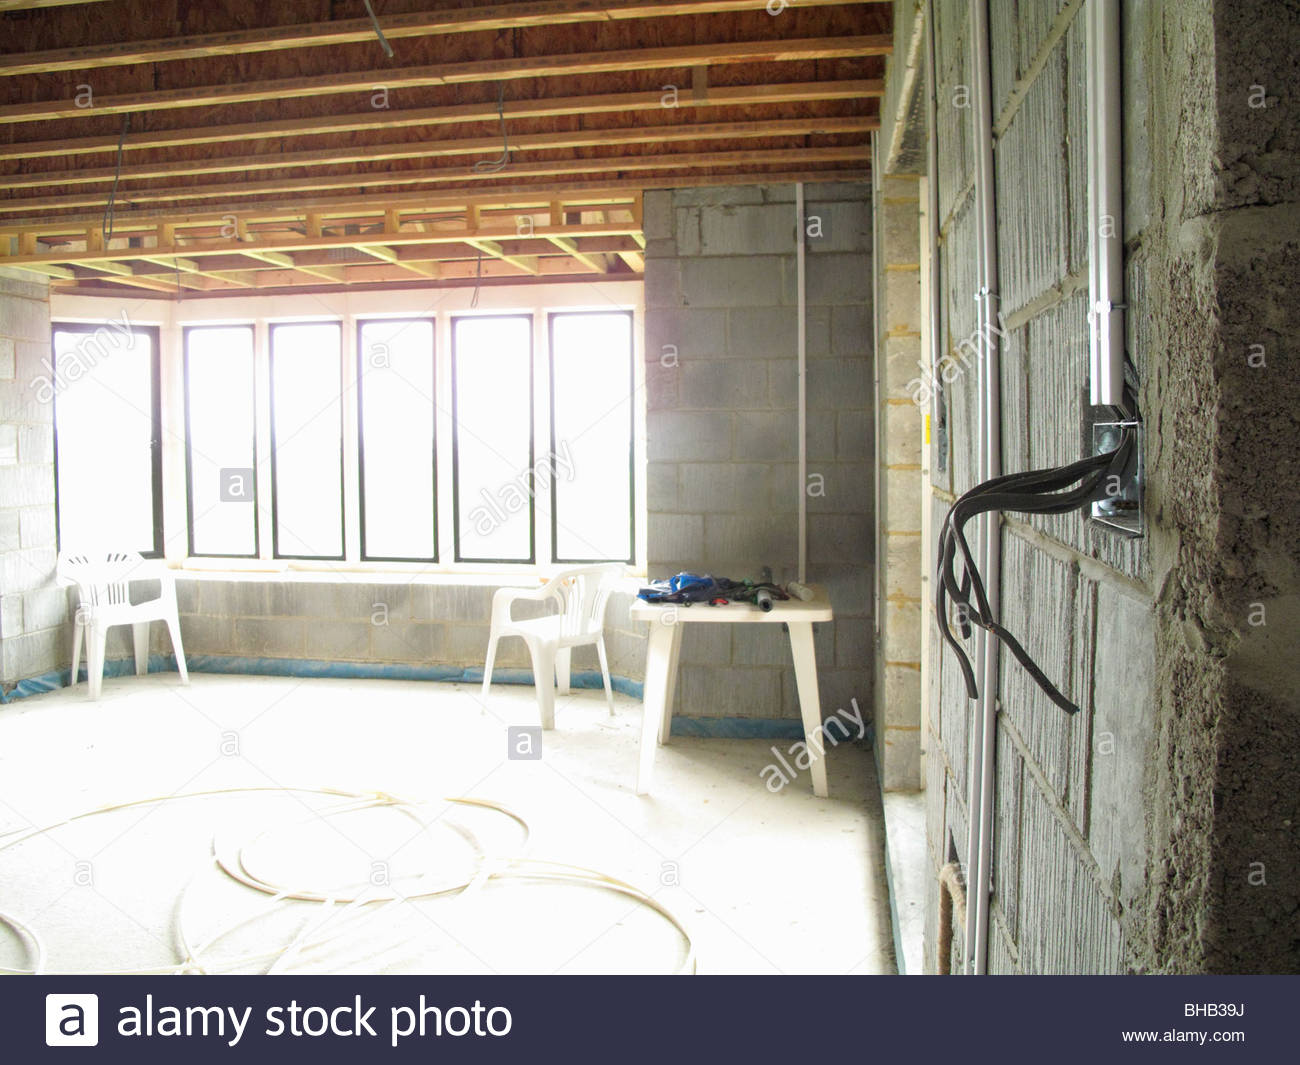 Electrical Wiring Stockfotos & Electrical Wiring Bilder - Alamy